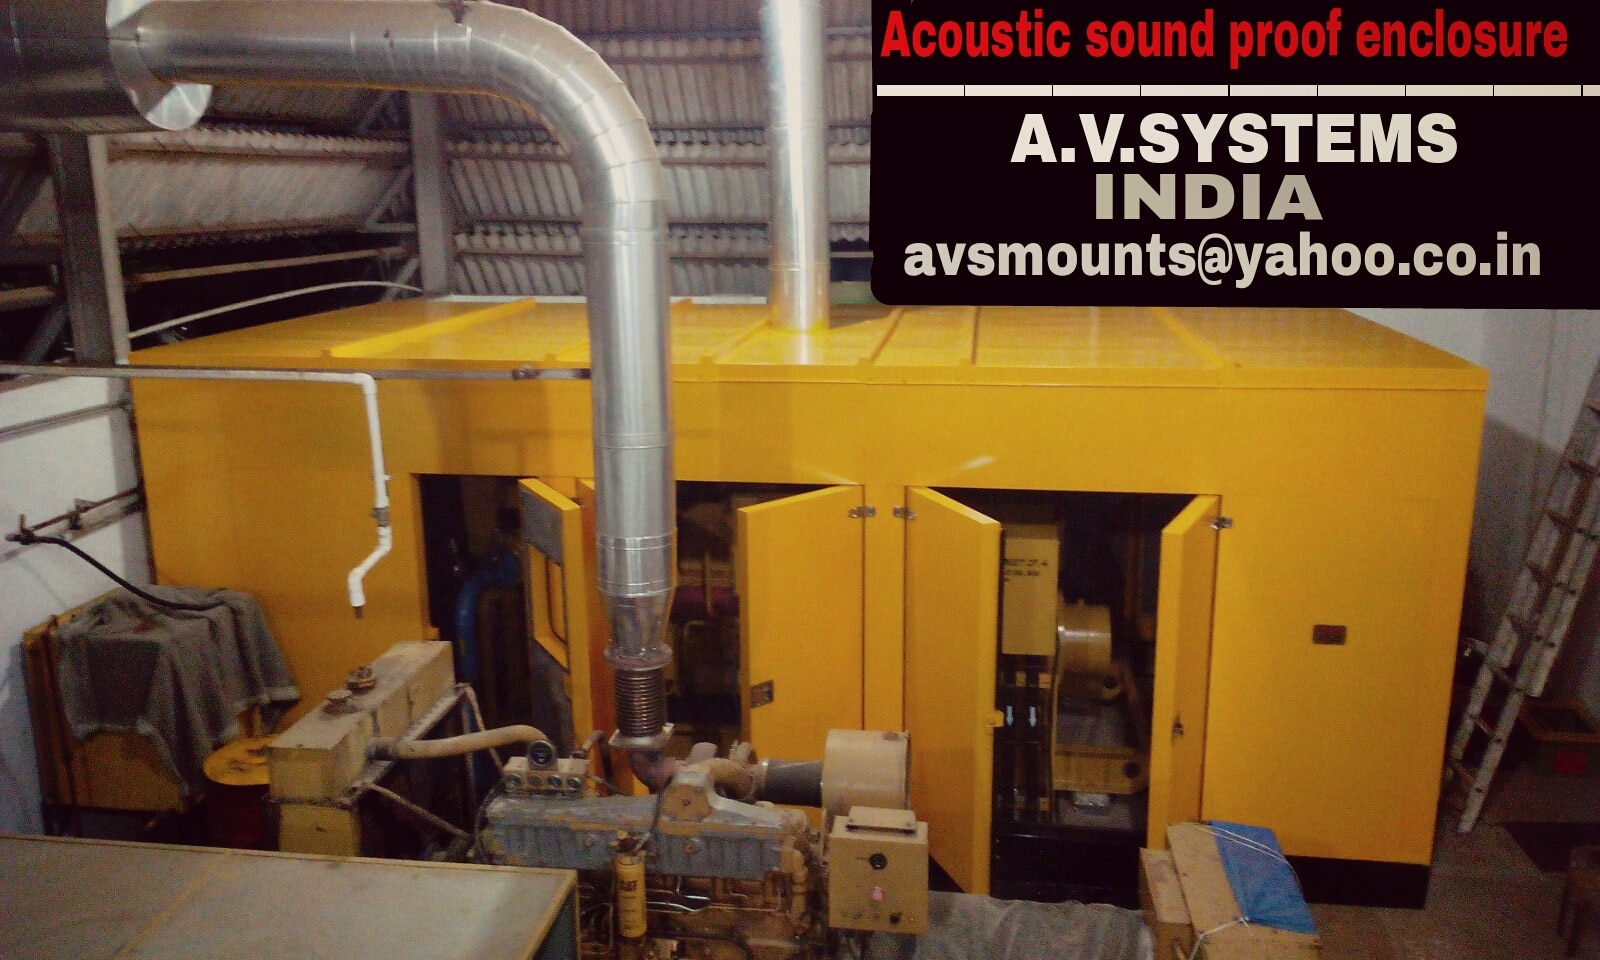 Sound proof Enclosure Being a fast-moving organization, we are highly instrumental in providing Sound Proof Acoustic Enclosure. The offered product is known for their high-quality and superior engineering finish. Features: Application specific design Cost effective High functionality Specification: Modular construction, CR-steel sheet, glass wool, Powder coating, easy assembly and dismantling Insulation infill –Glasswool, PU foam, Polymeric membrane, cork.   Upto 25 dbA-sound reduction Conforms to CPCB, and EMS specification	 Sound proof Enclosure in Coimbatore Sound proof Enclosure in Chennai Sound proof Enclosure in Tiruppur Sound proof Enclosure in Cochin